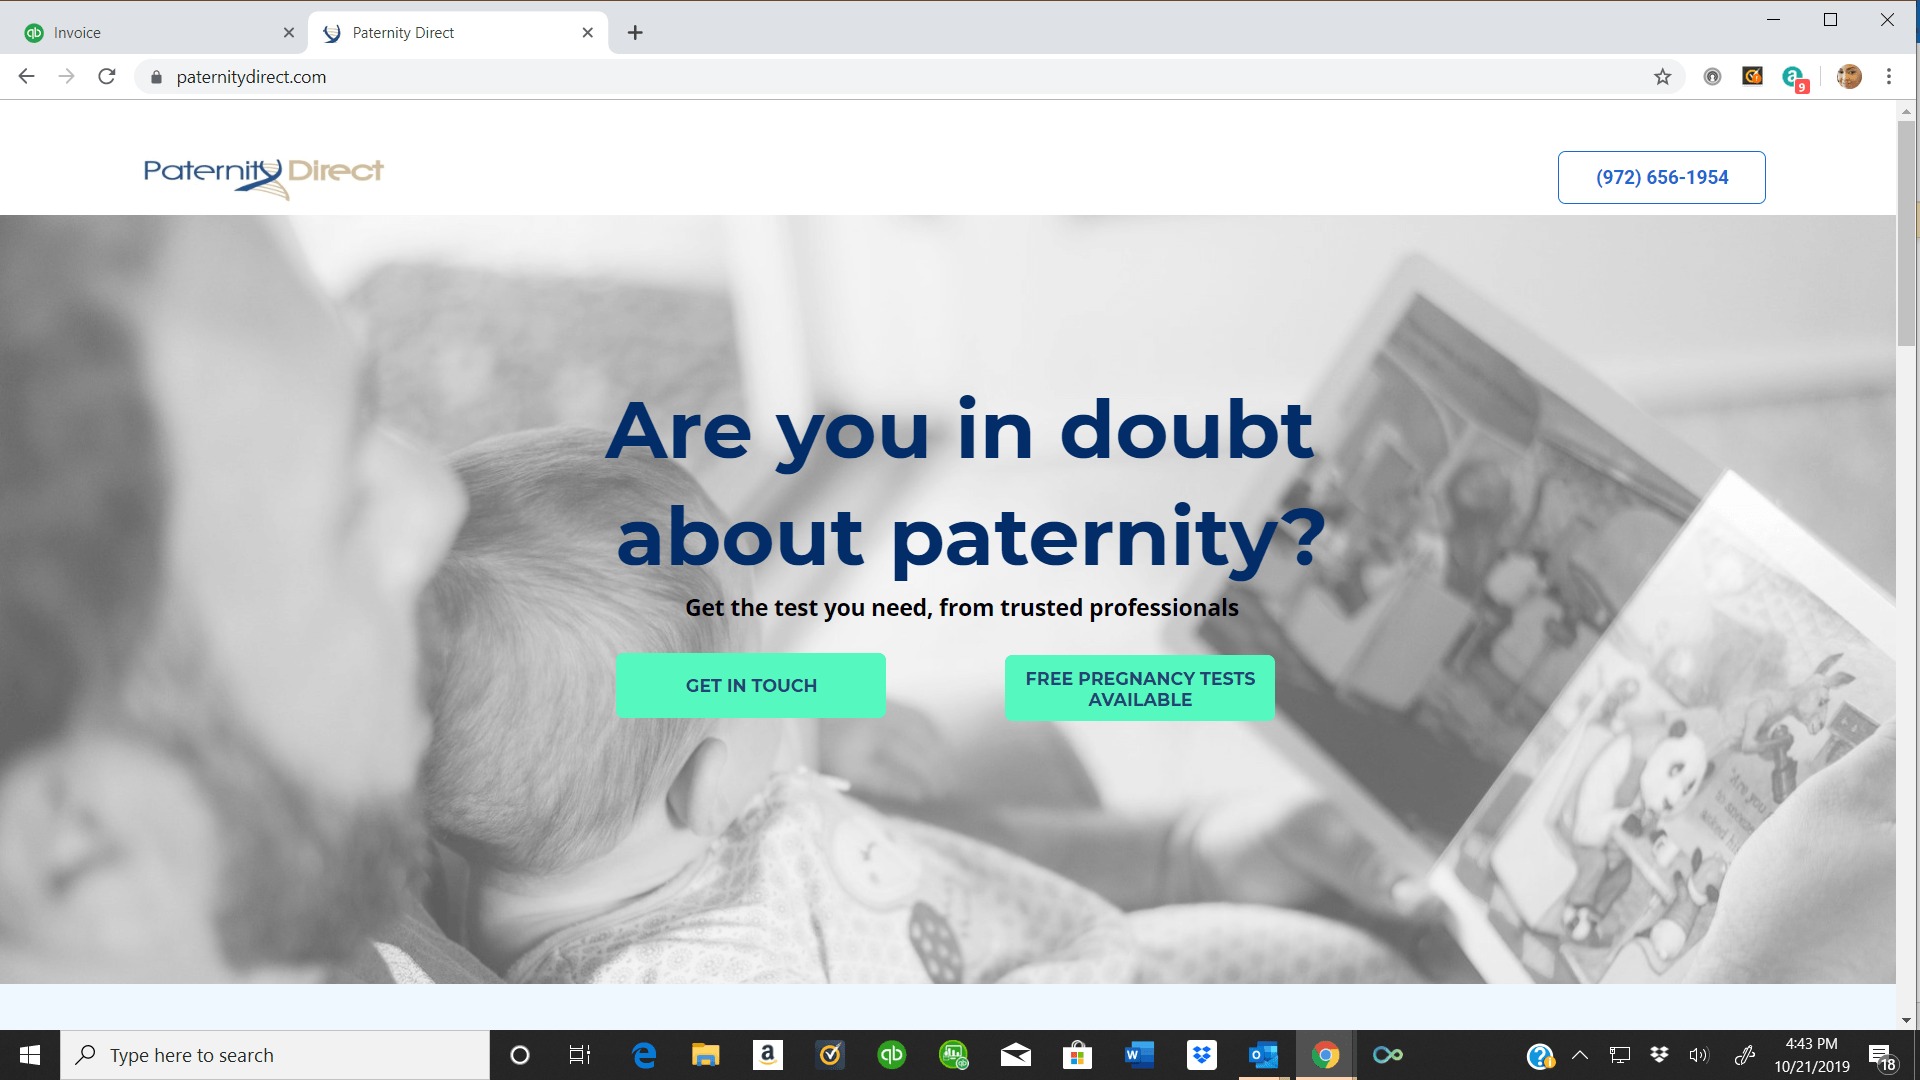 Paternity Direct